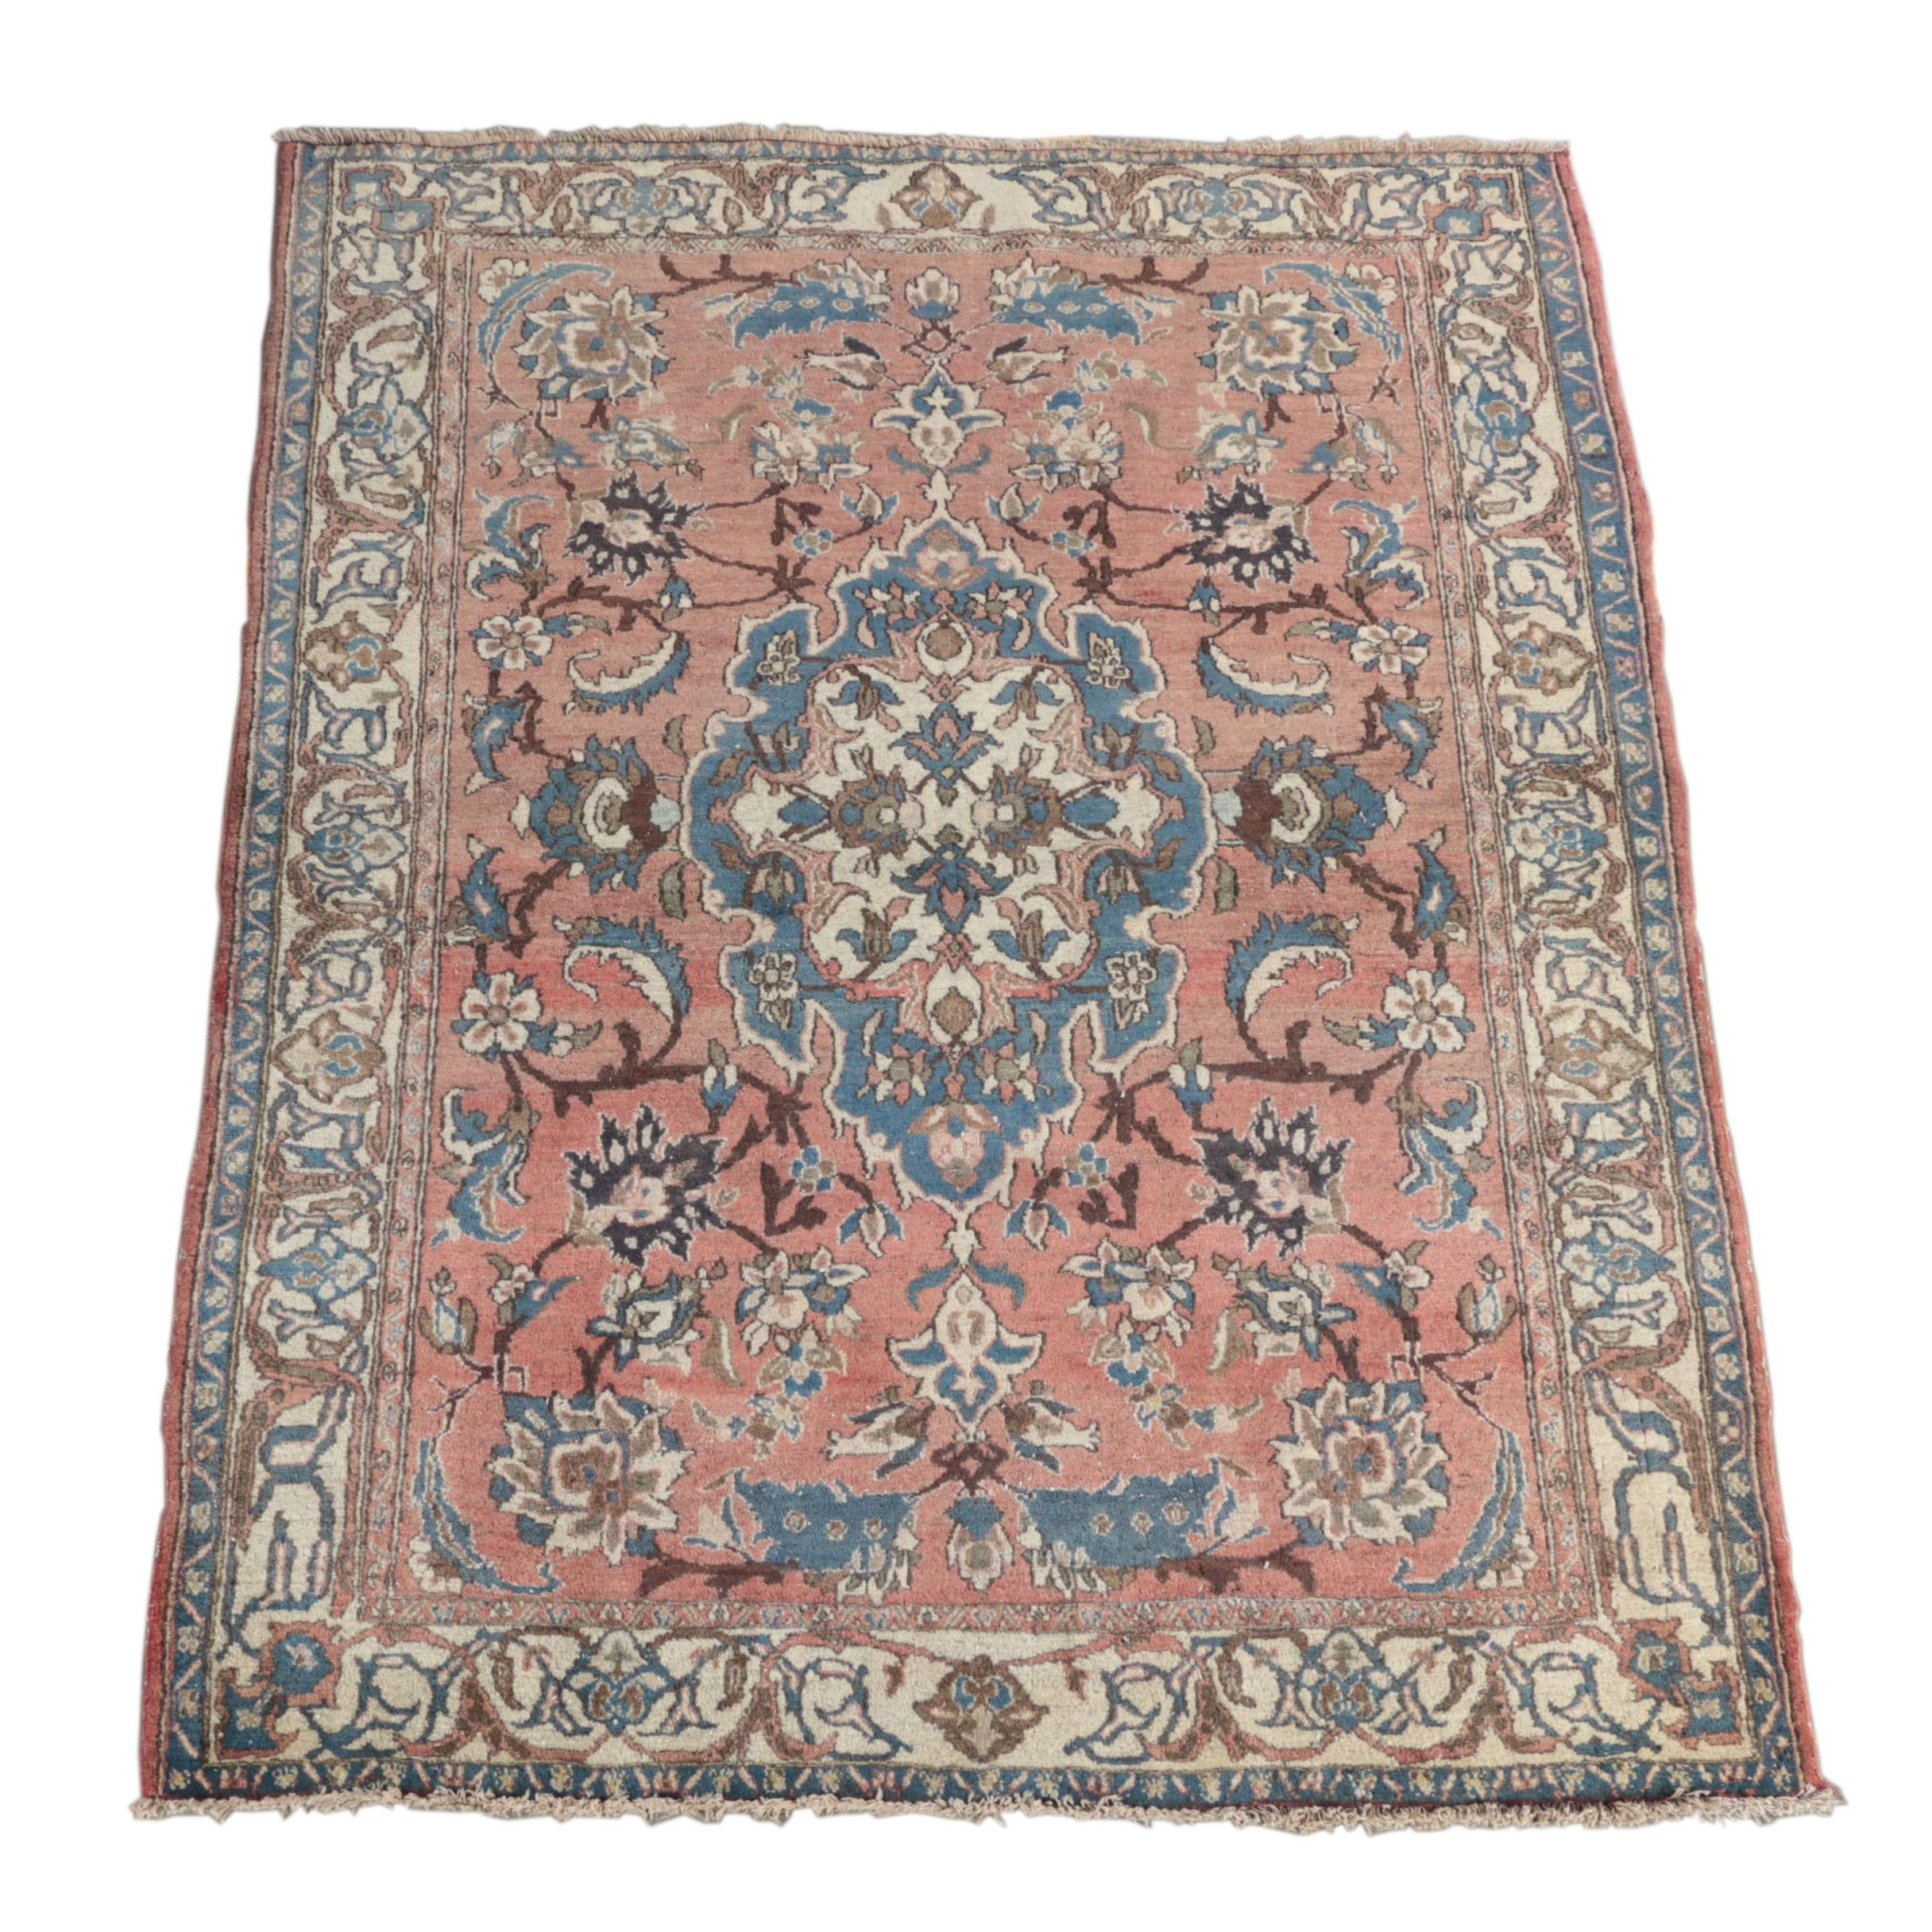 Semi-Antique Hand-Knotted Kurdish Bijar Wool Area Rug